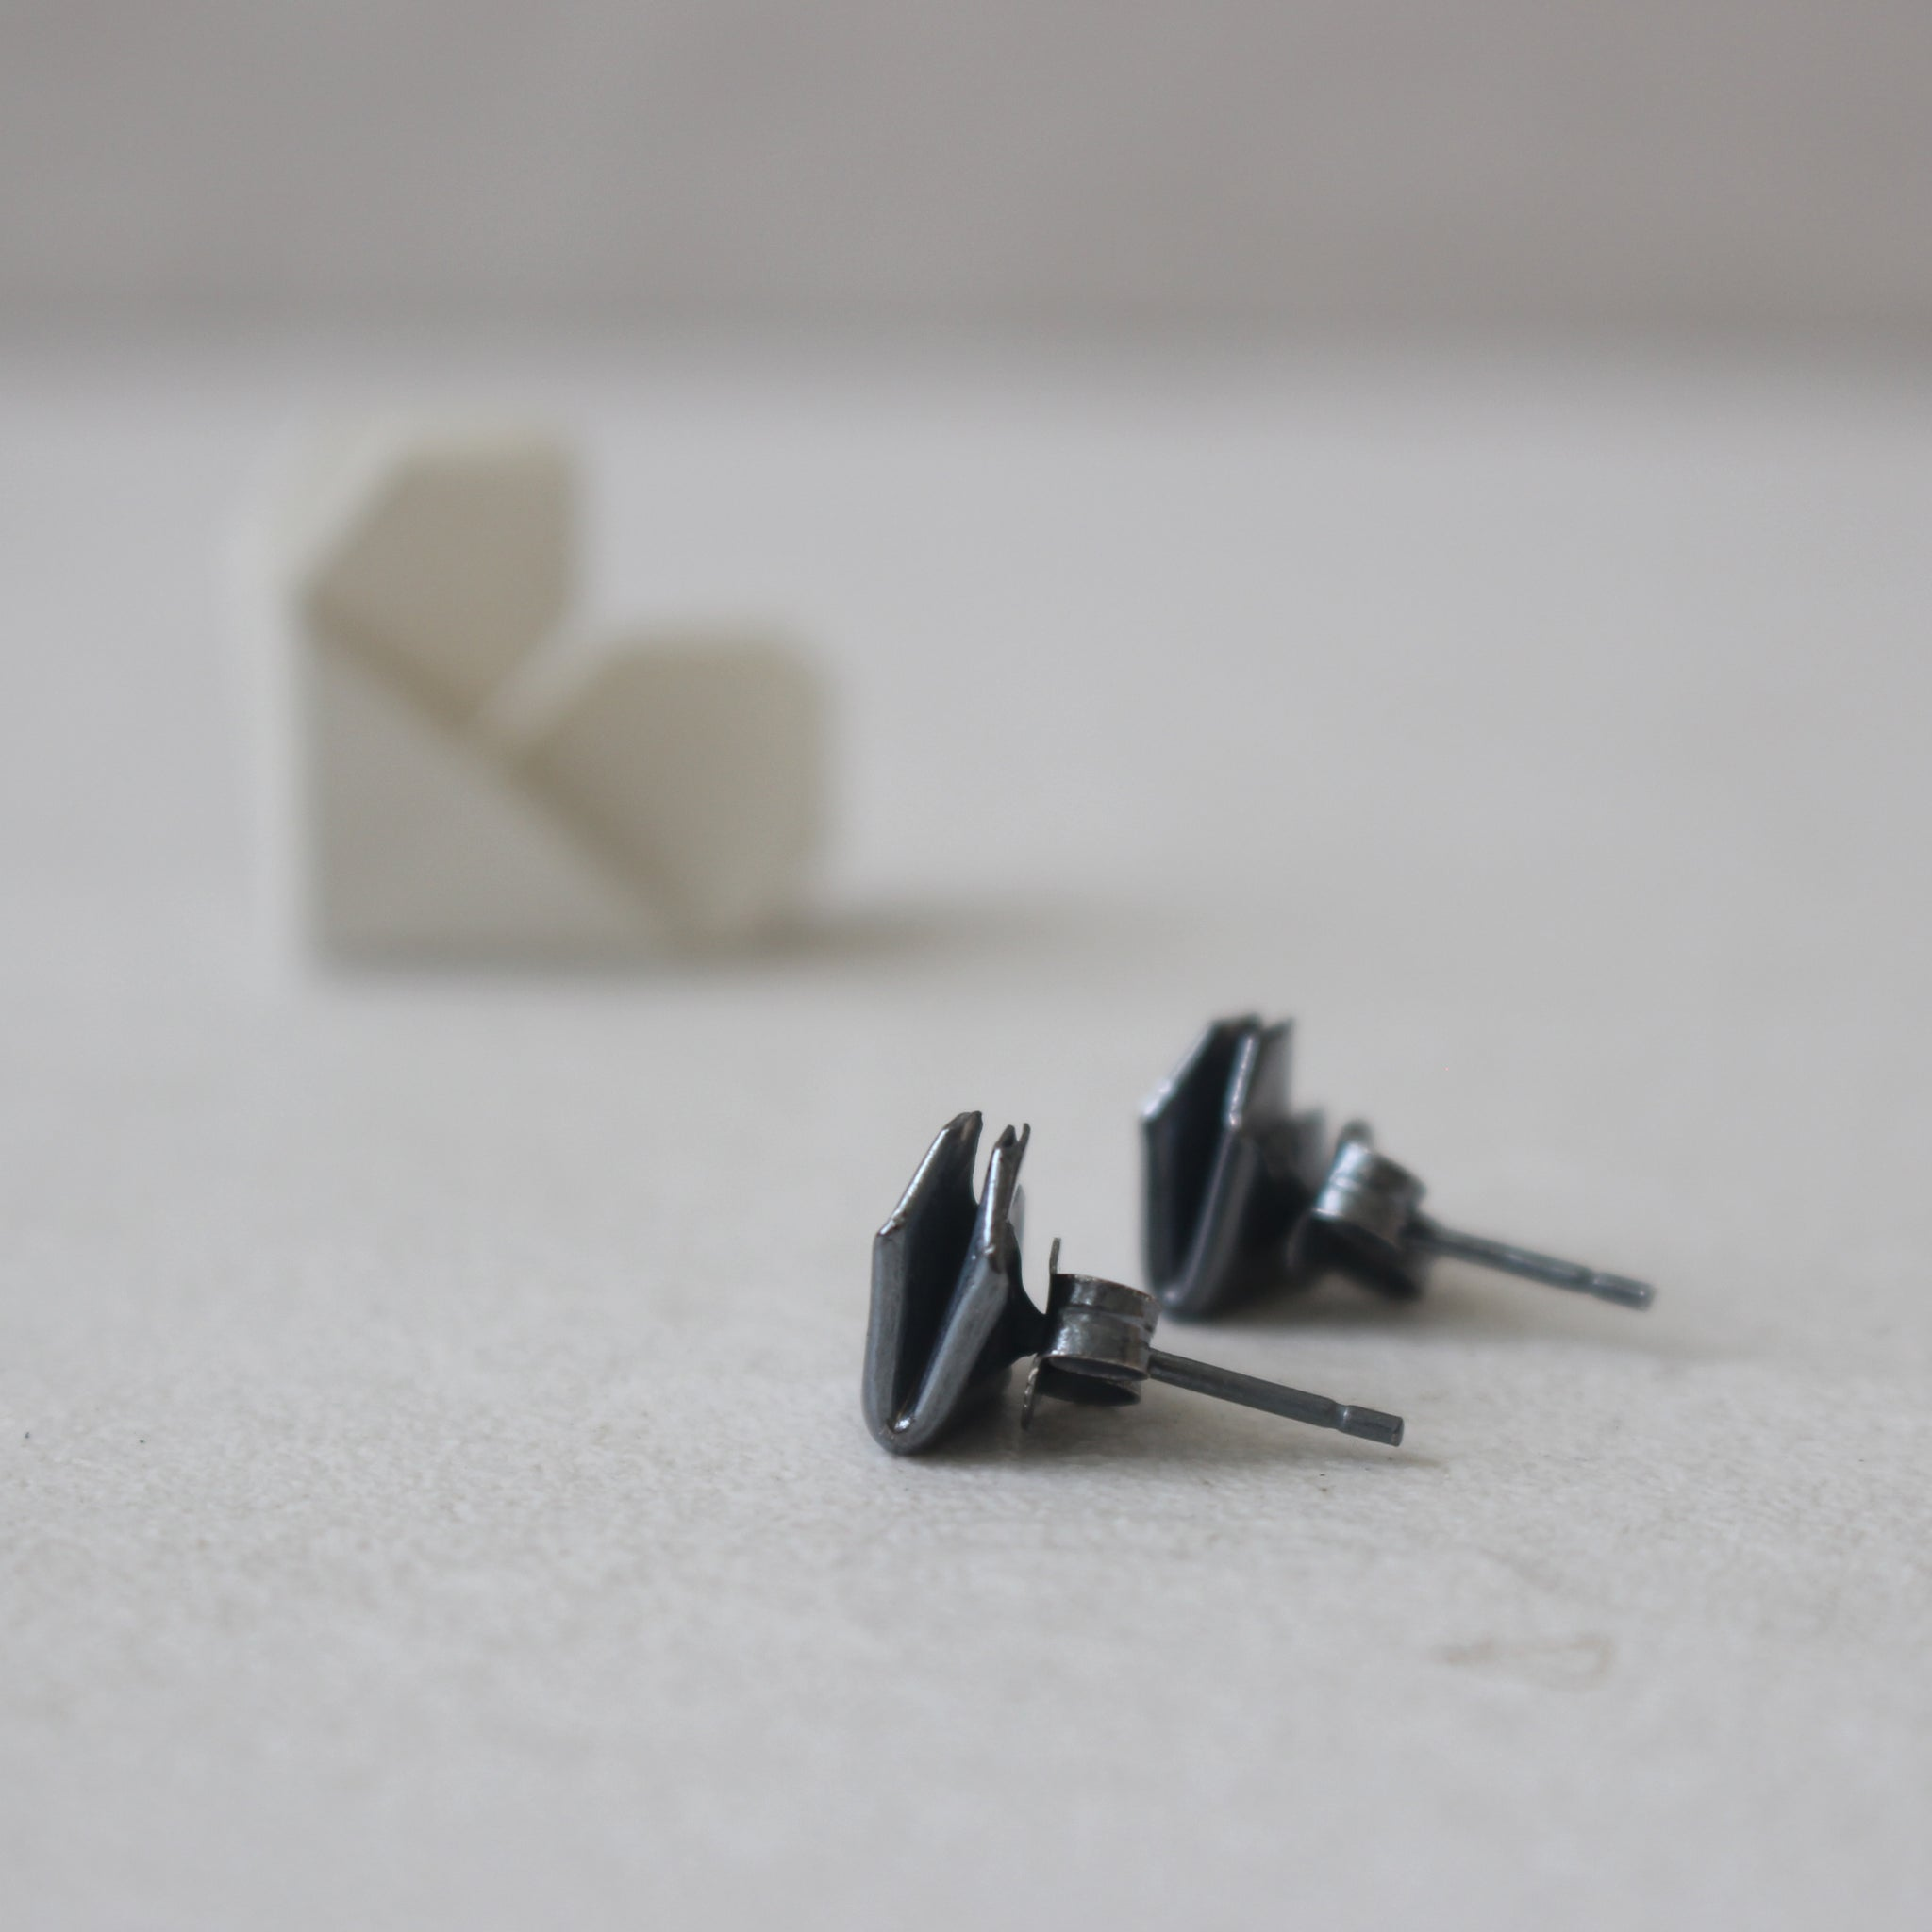 Black Silver Origami Heart Stud Earrings (Medium) / Oxidised Silver Origami Heart Earrings (Medium)